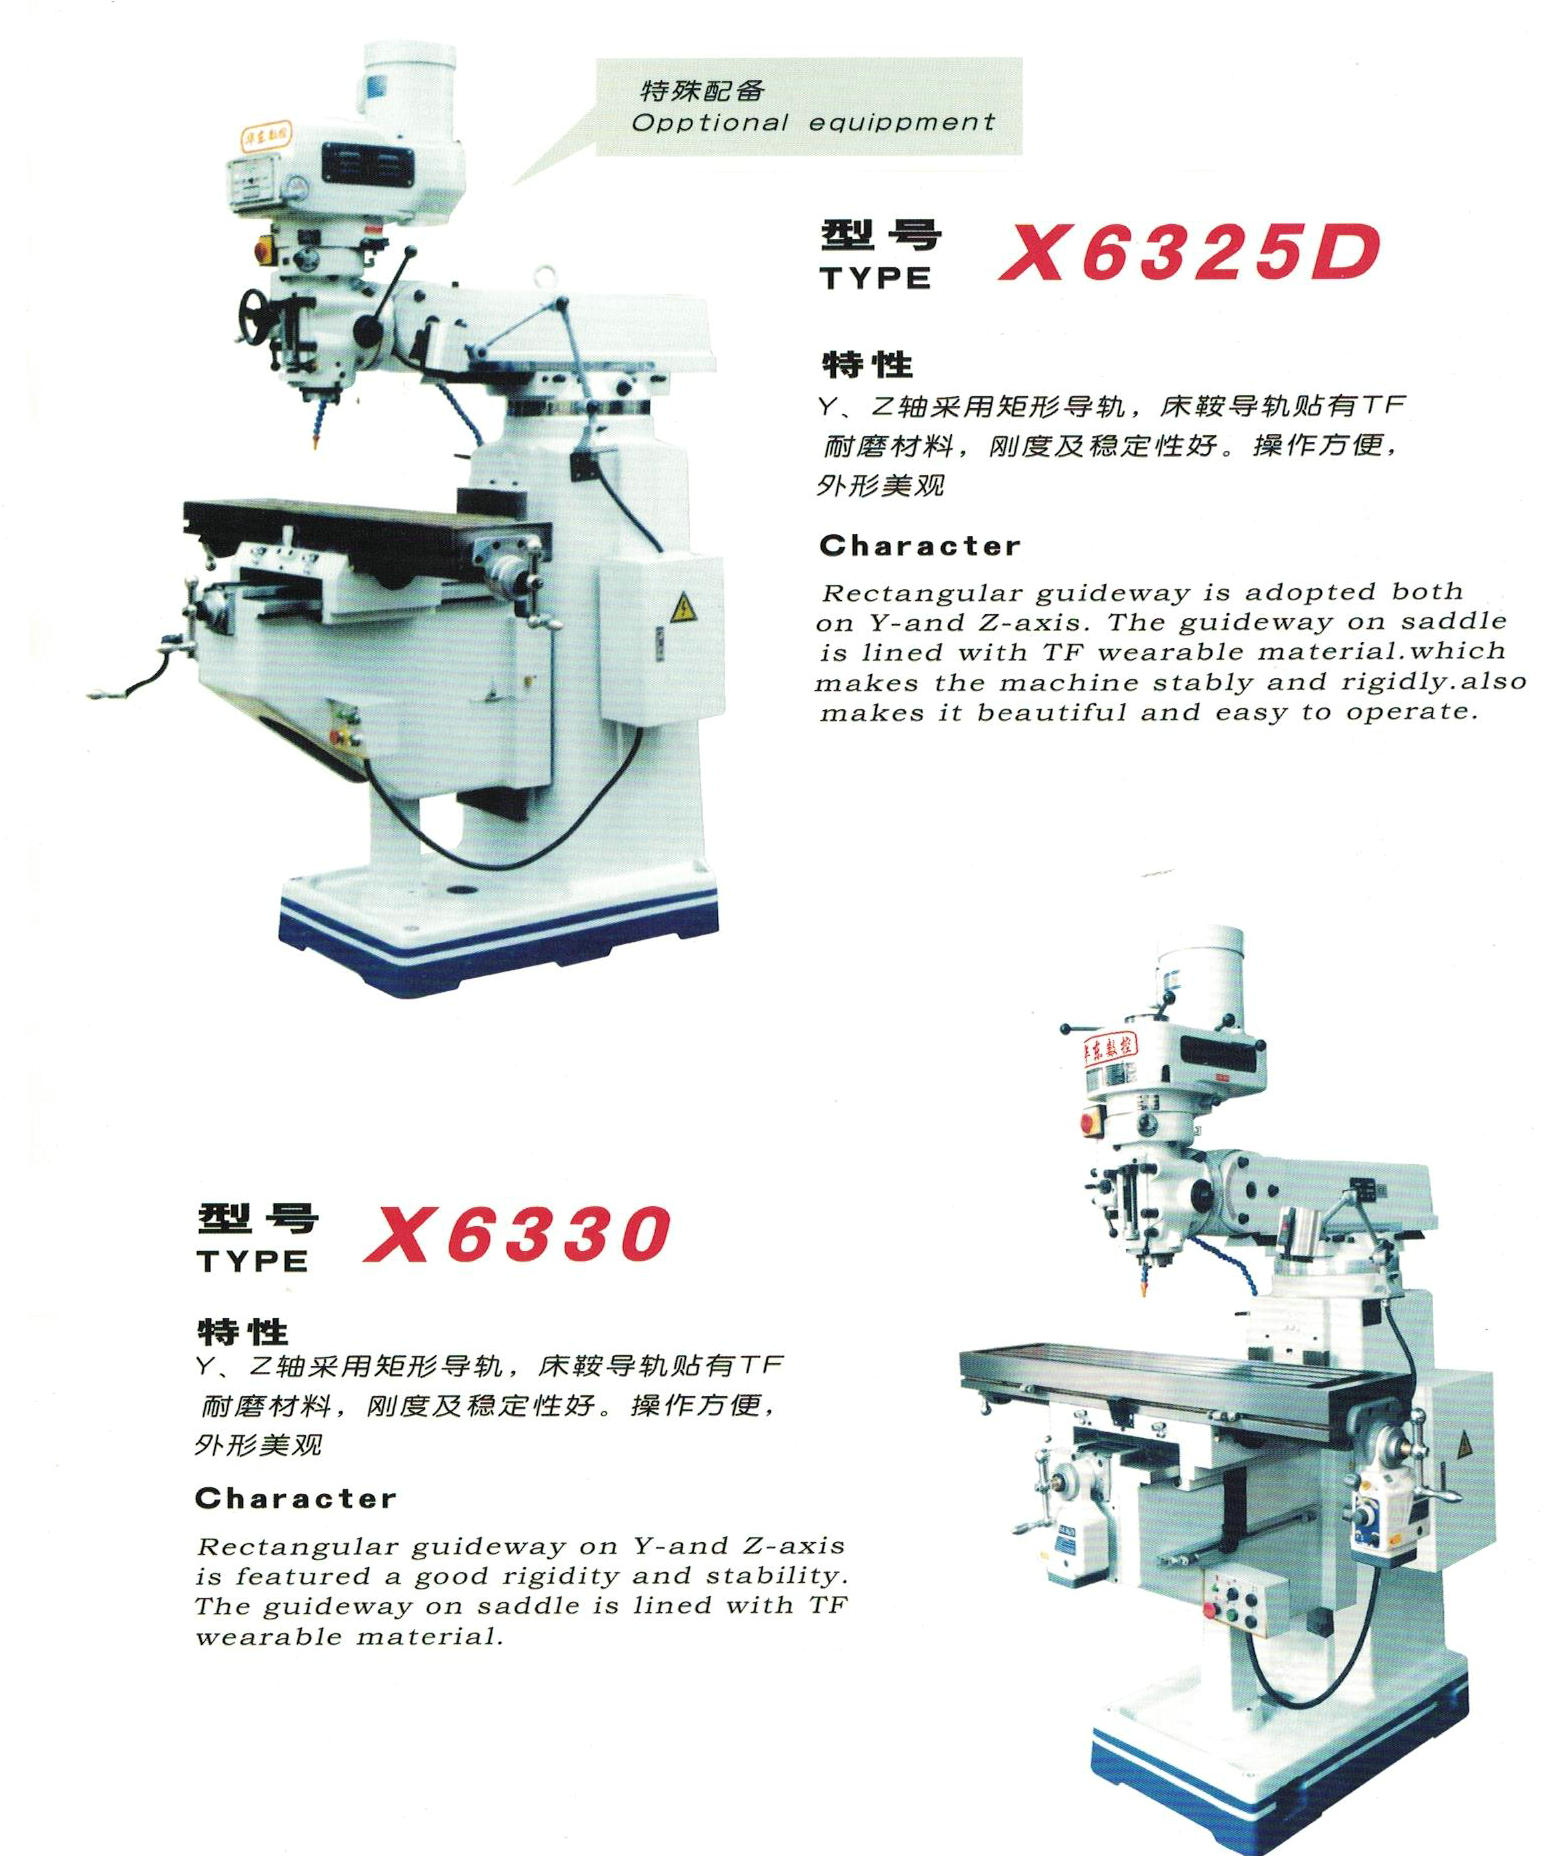 TURRET MILLING MACHINE SERIES X6323-X6325-X6330-X6333